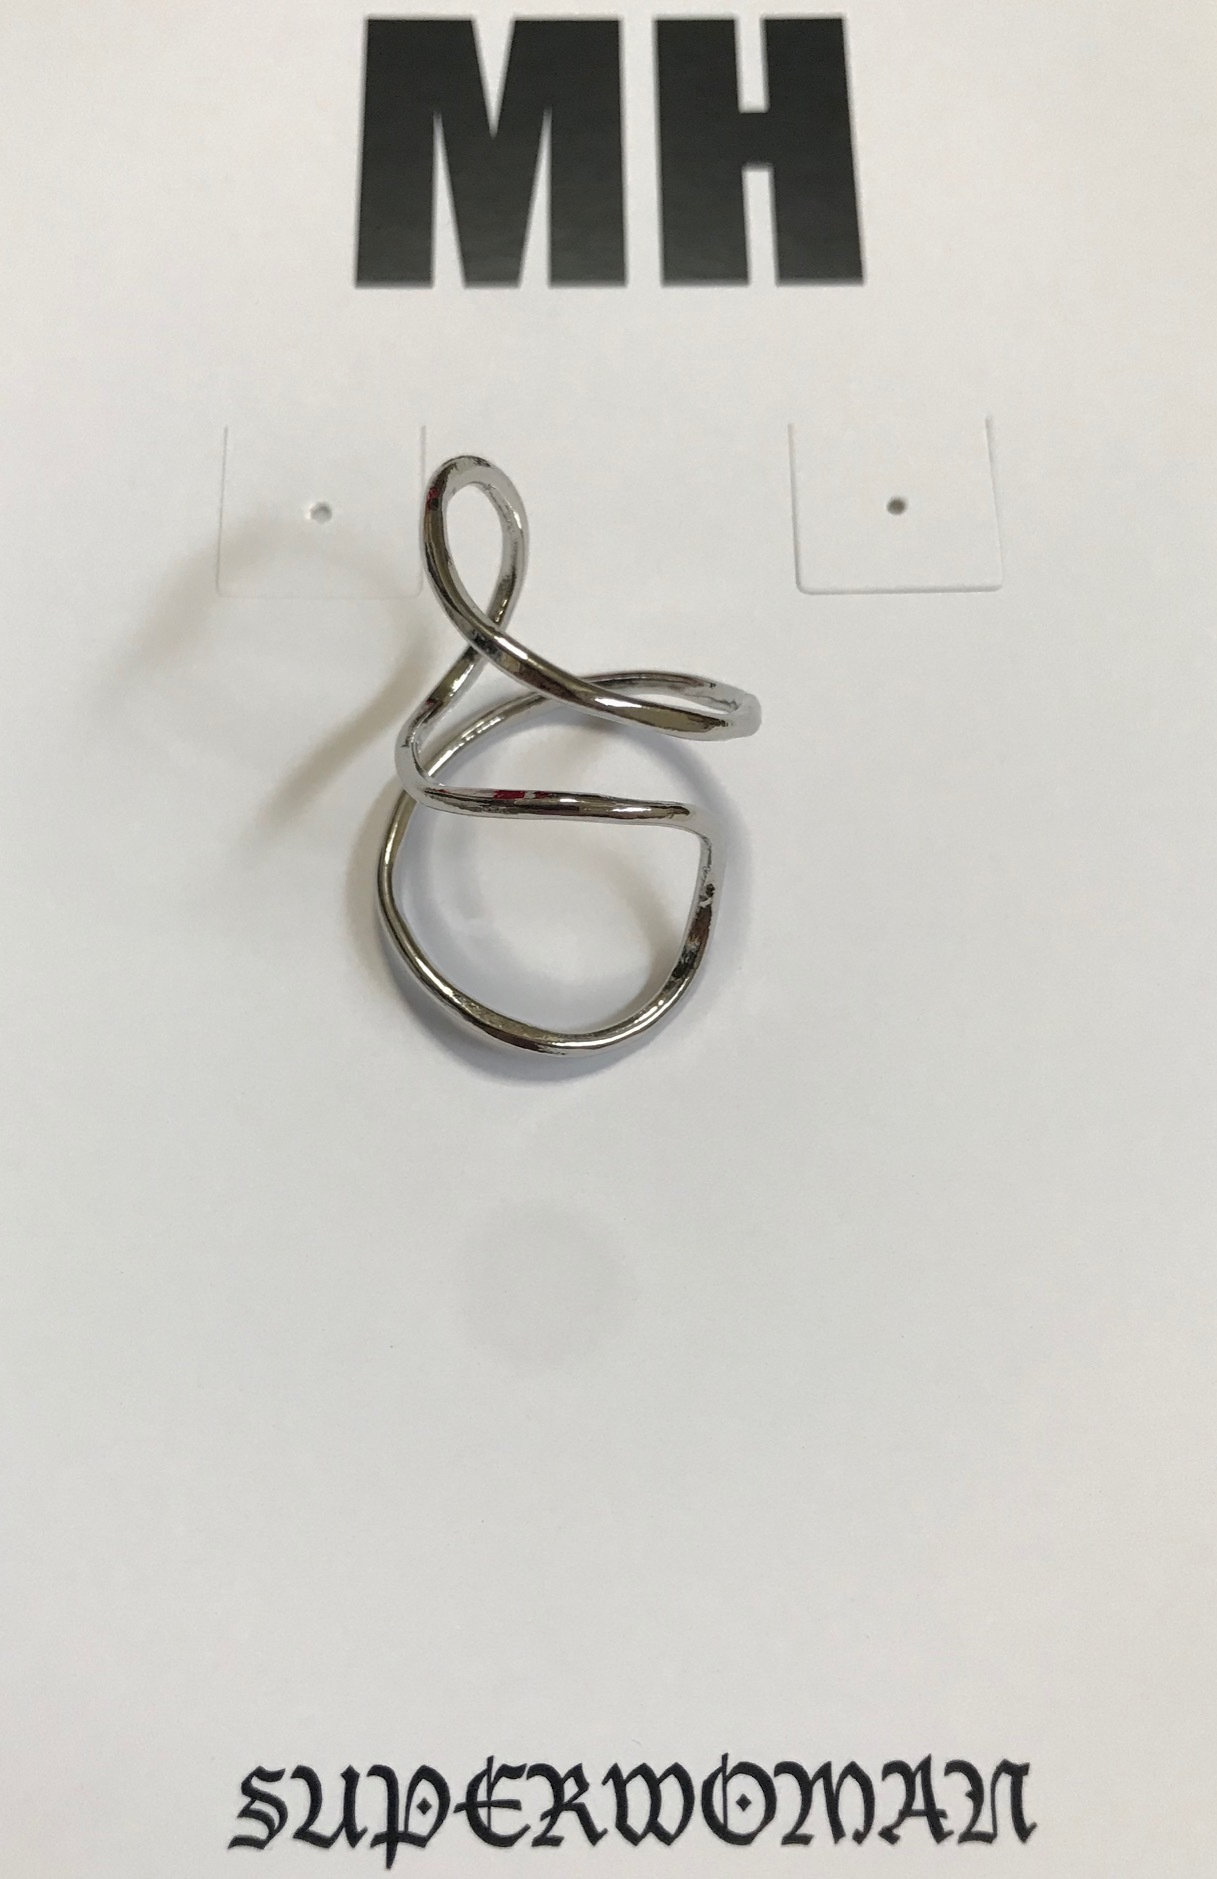 MH Deformed wire ring